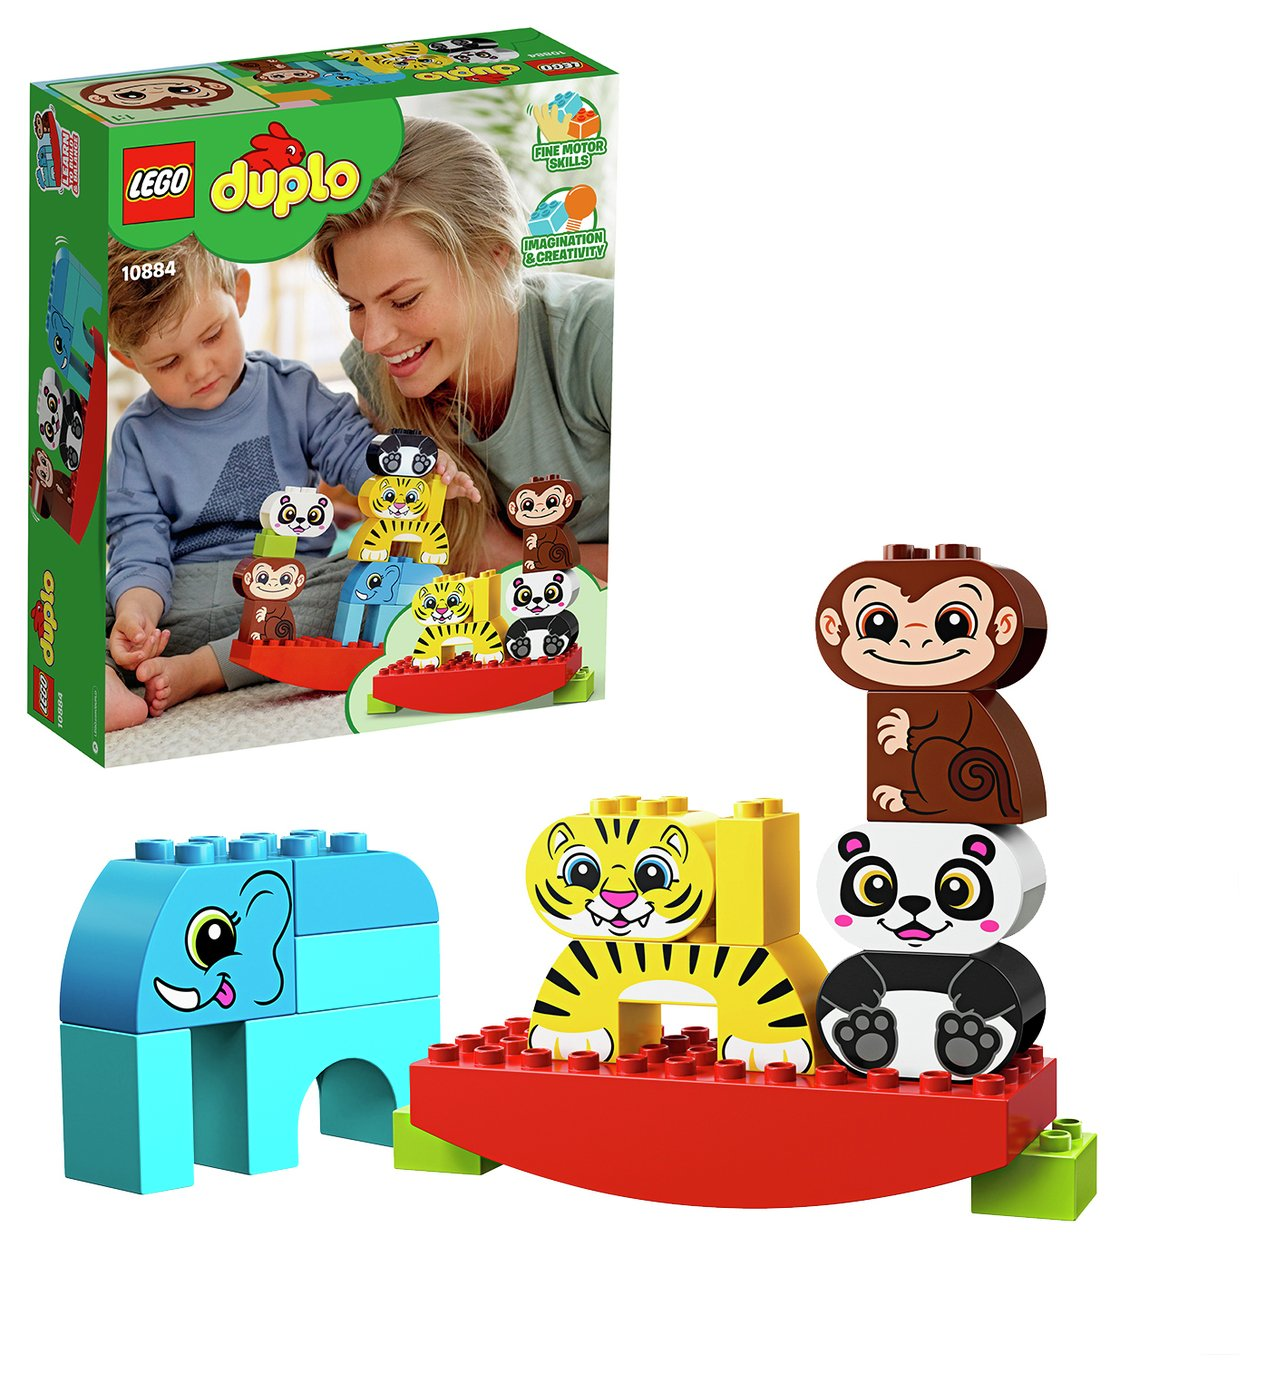 LEGO Duplo My First Balancing Toy Animals - 10884